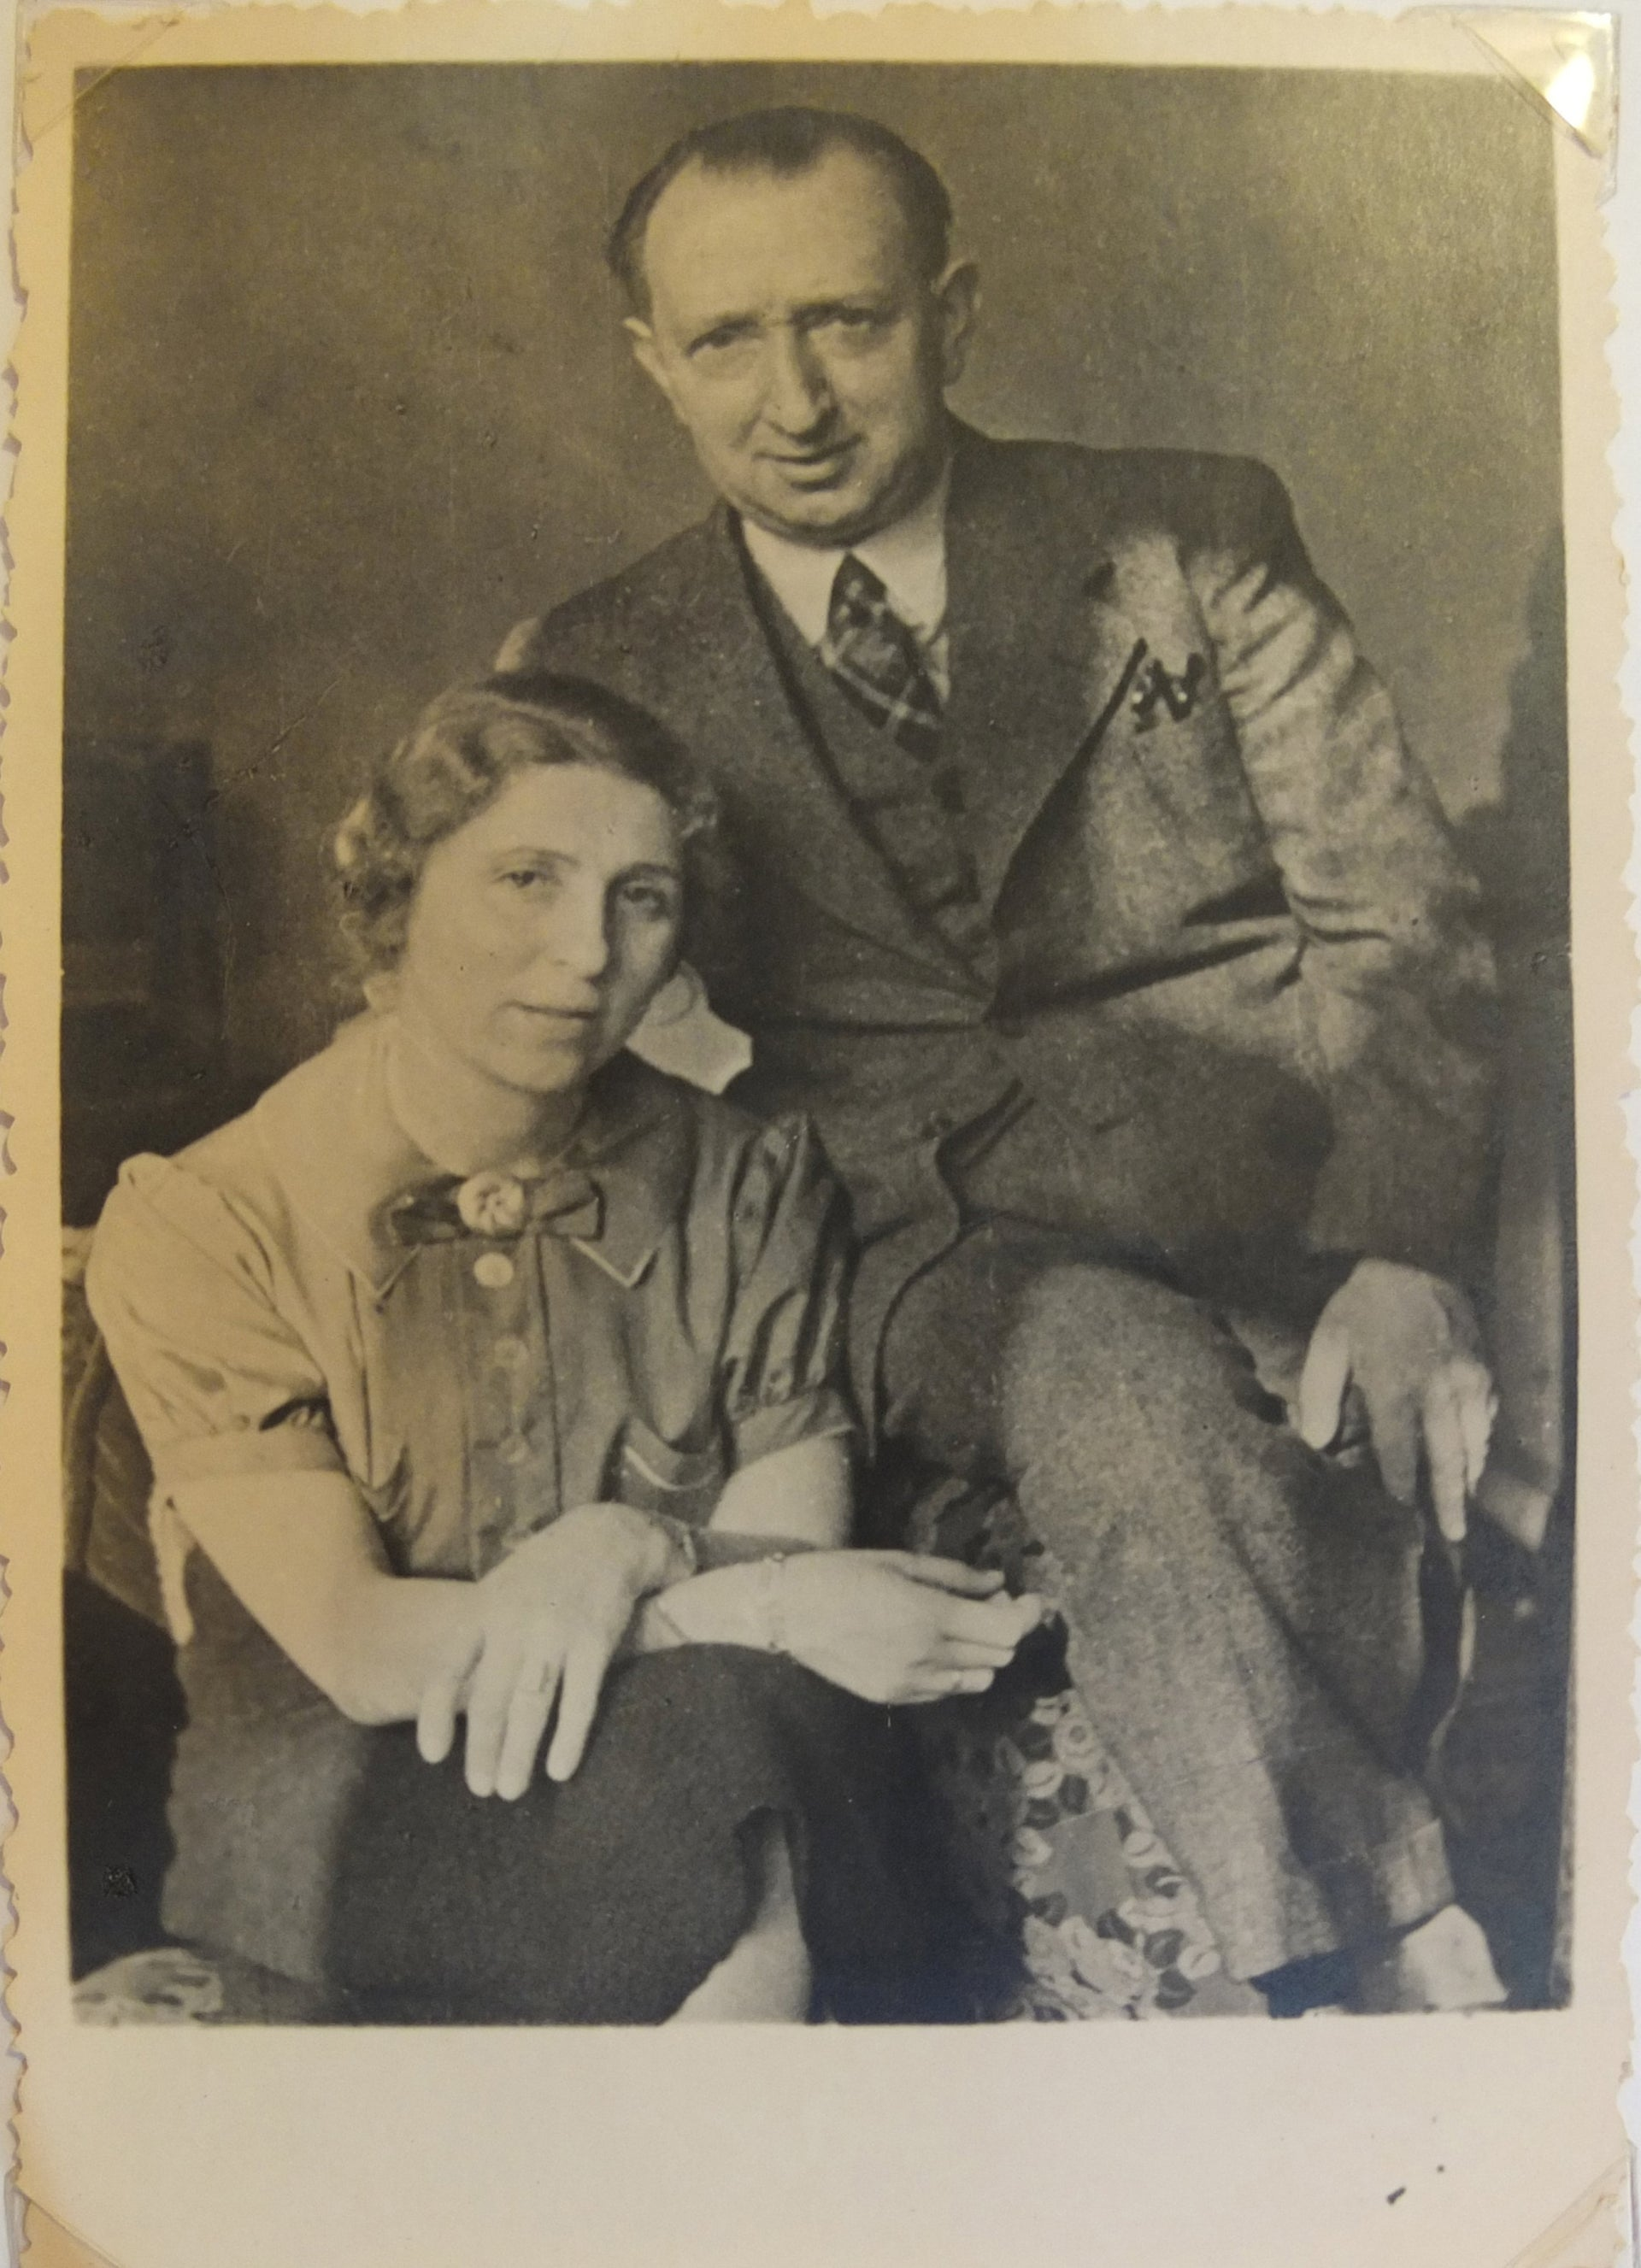 Georg and Charlotte Nomburg, 1938.